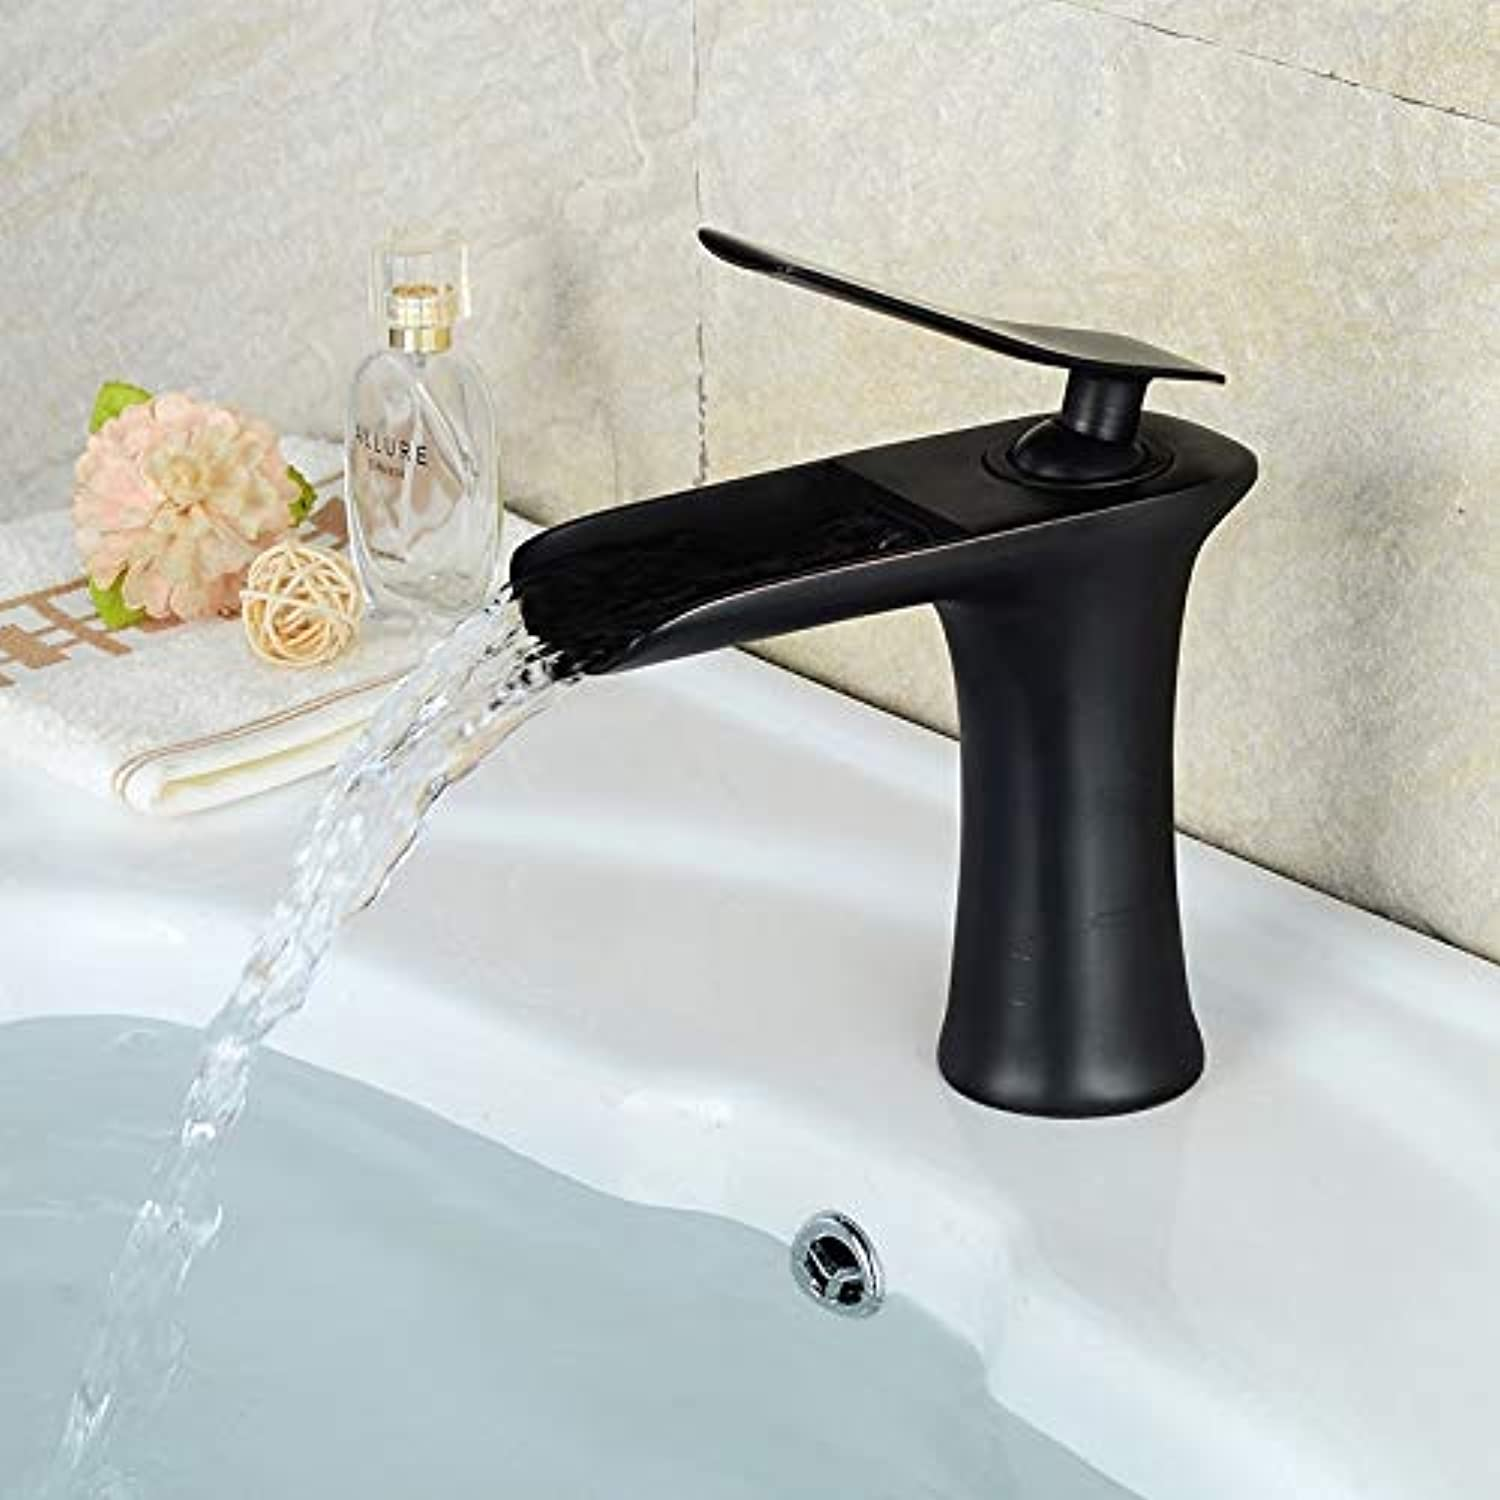 ROKTONG Bathroom Basin Faucet Waterfall Lavatory Sink Taps Cold and Hot Mixer Black,C